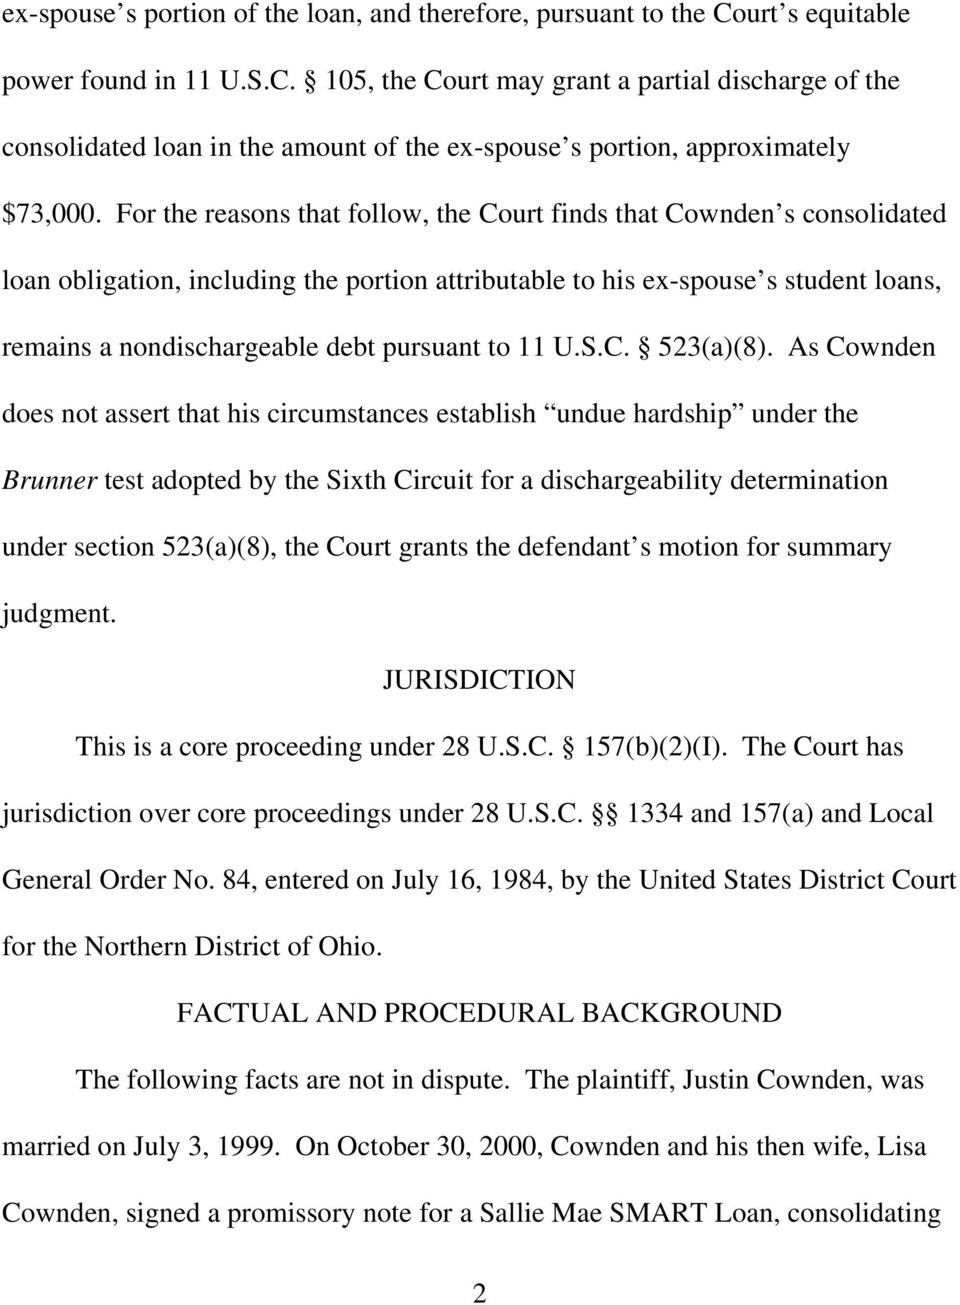 For the reasons that follow, the Court finds that Cownden s consolidated loan obligation, including the portion attributable to his ex-spouse s student loans, remains a nondischargeable debt pursuant